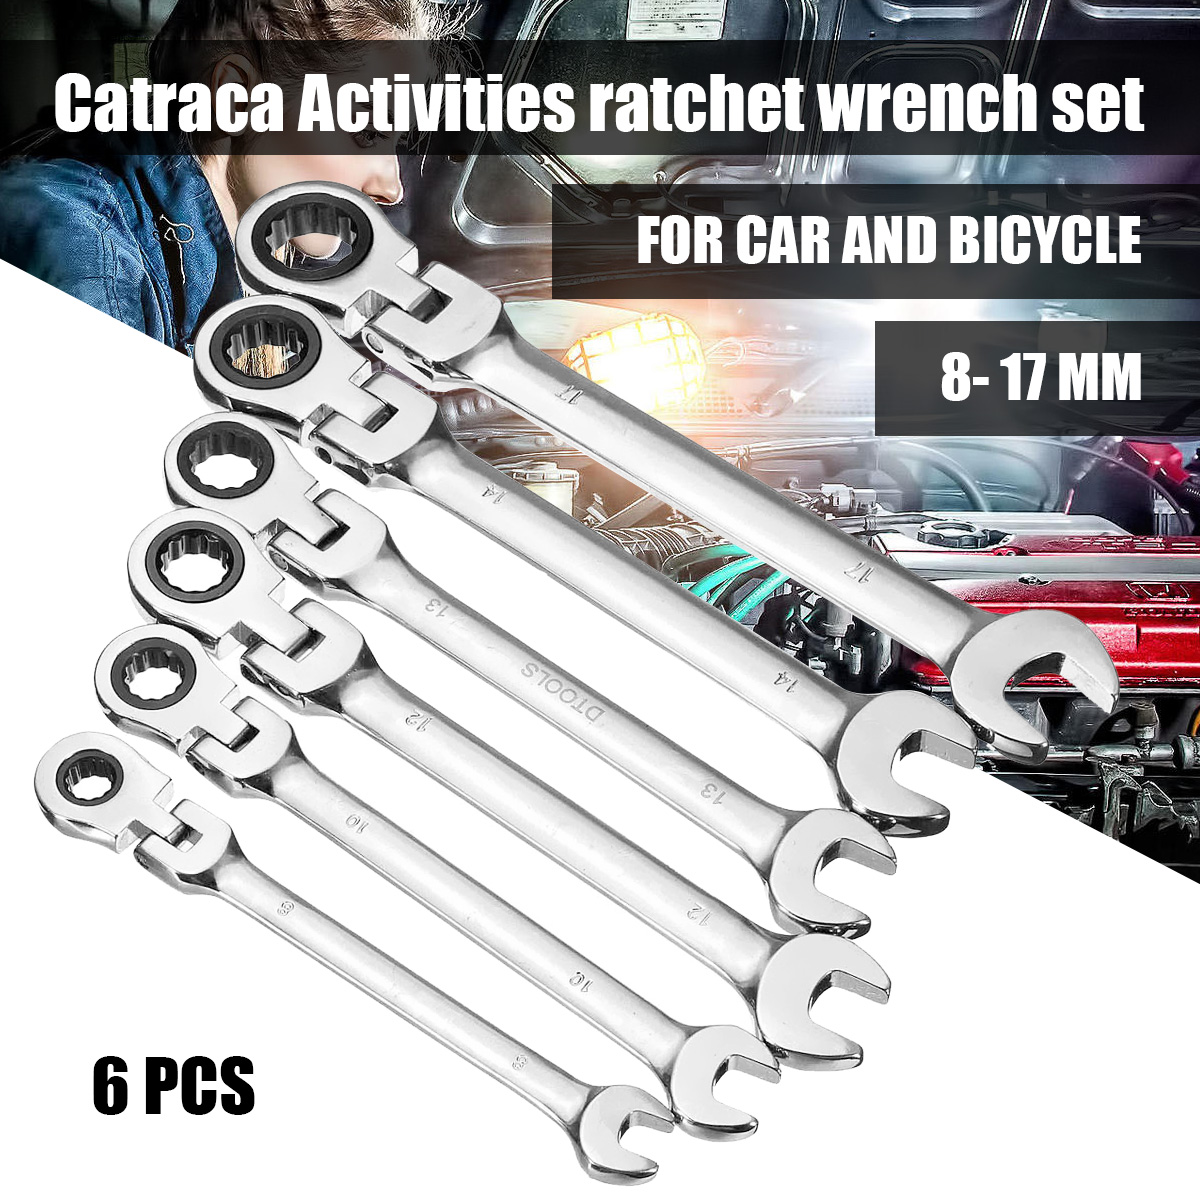 Newest 6pcs Gears Wrench Set Open End Wrenches Activities Ratchet Repair Tools To Bike Torque Combination Spanner Allen Keys newacalox 7pcs lot activities ratchet gears wrench set torque wrench combination spanner allen keys for bike car repair tools